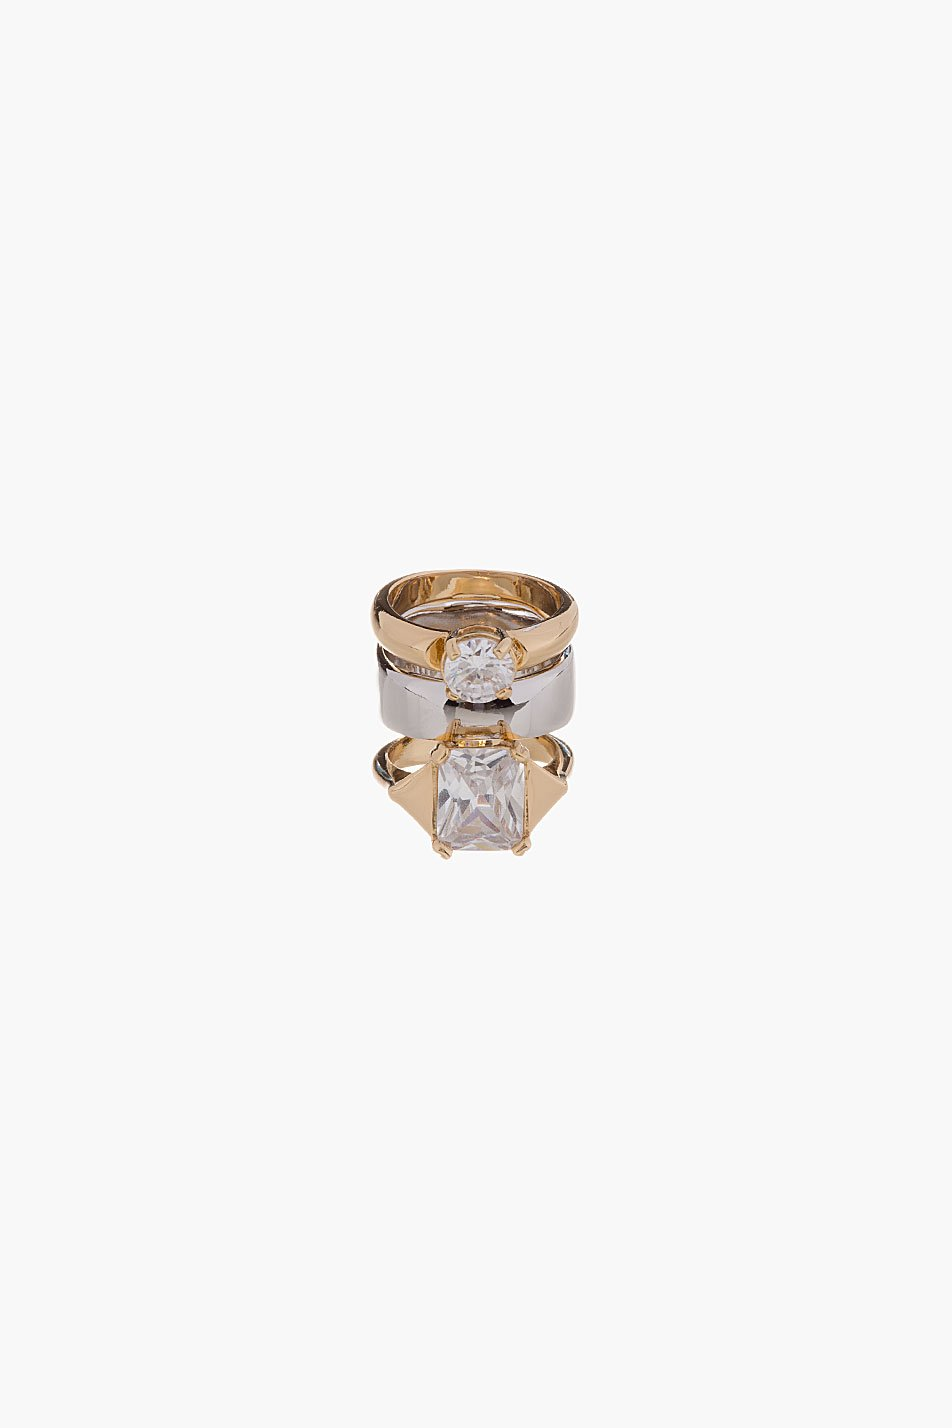 maison martin margiela gold and silver stacked zirconia ring. Black Bedroom Furniture Sets. Home Design Ideas